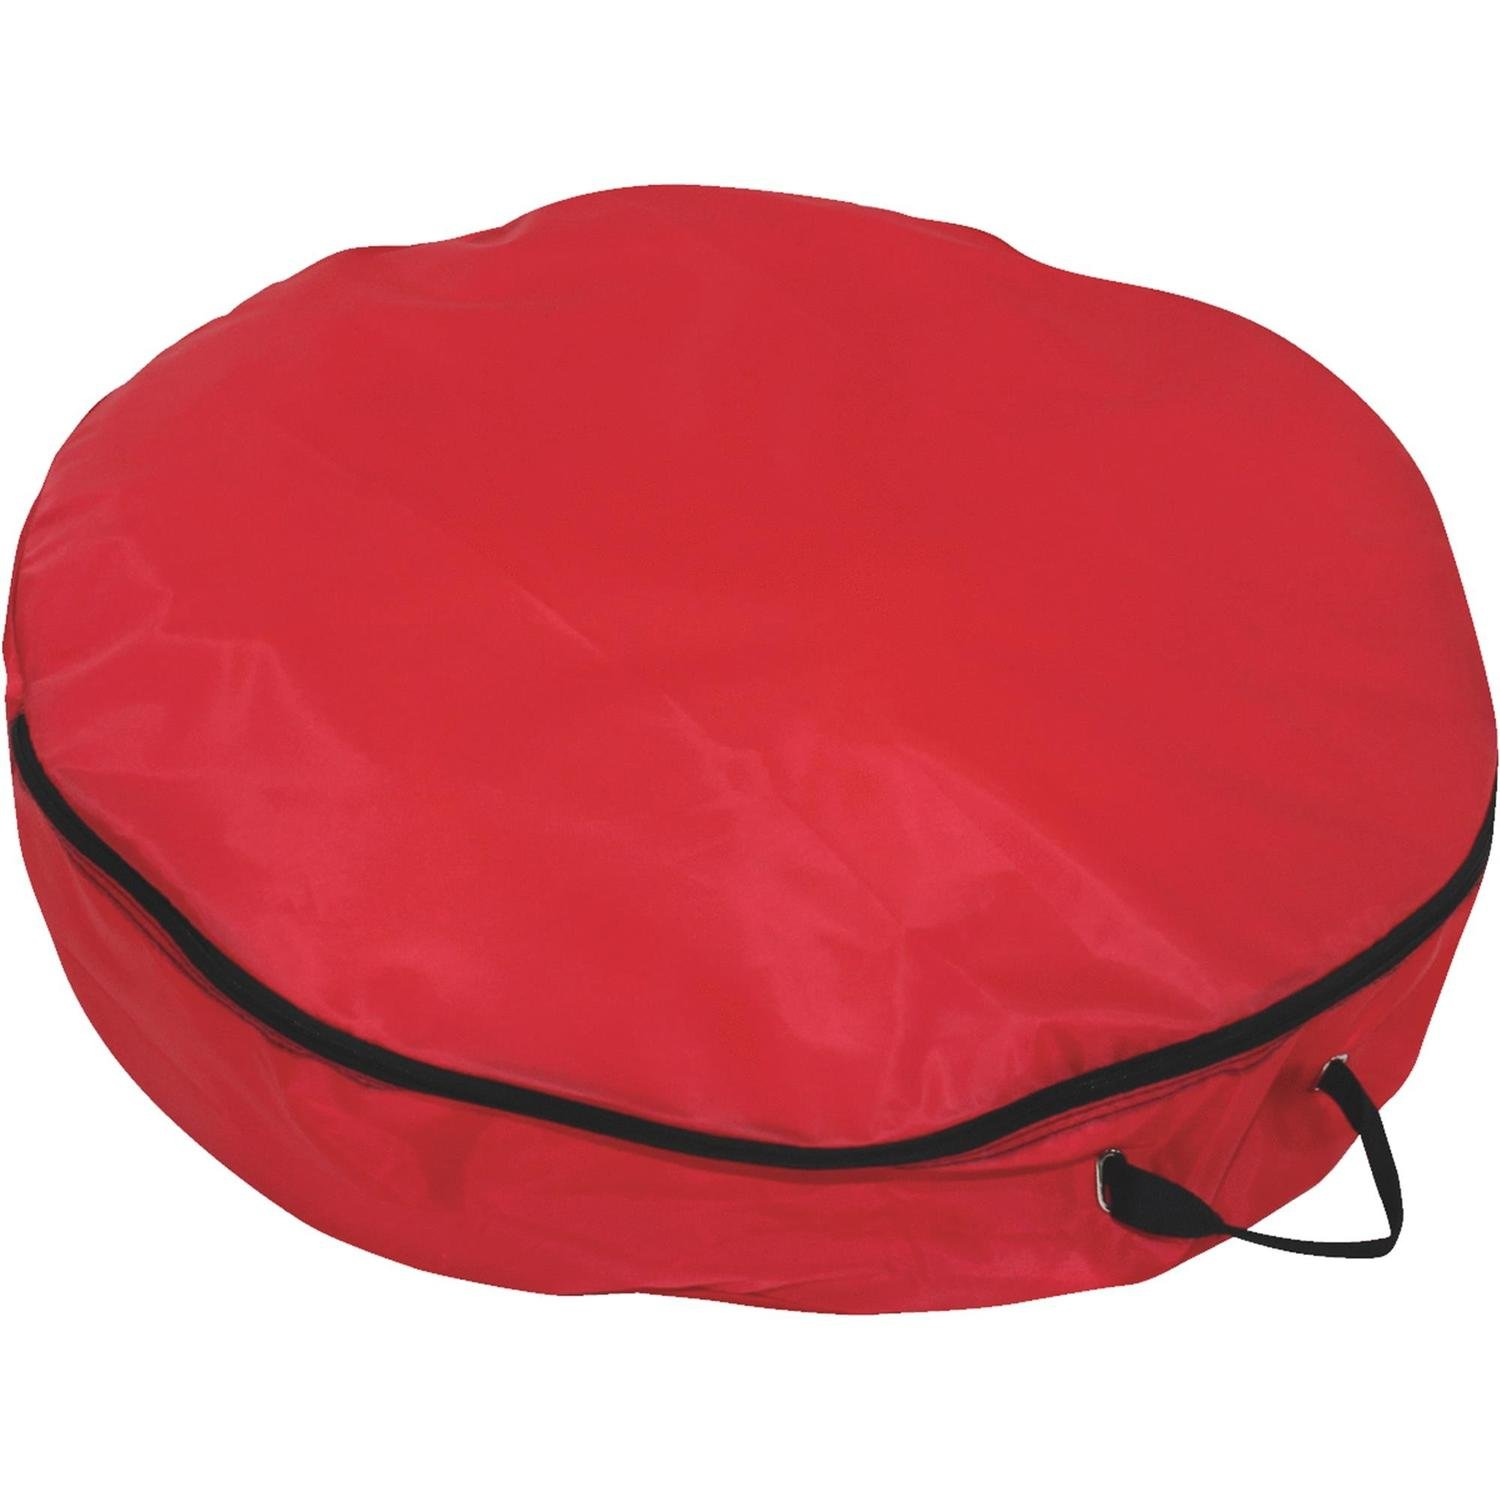 Dyno 24'' Lightweight Red Christmas Wreath Storage Bag with Handles